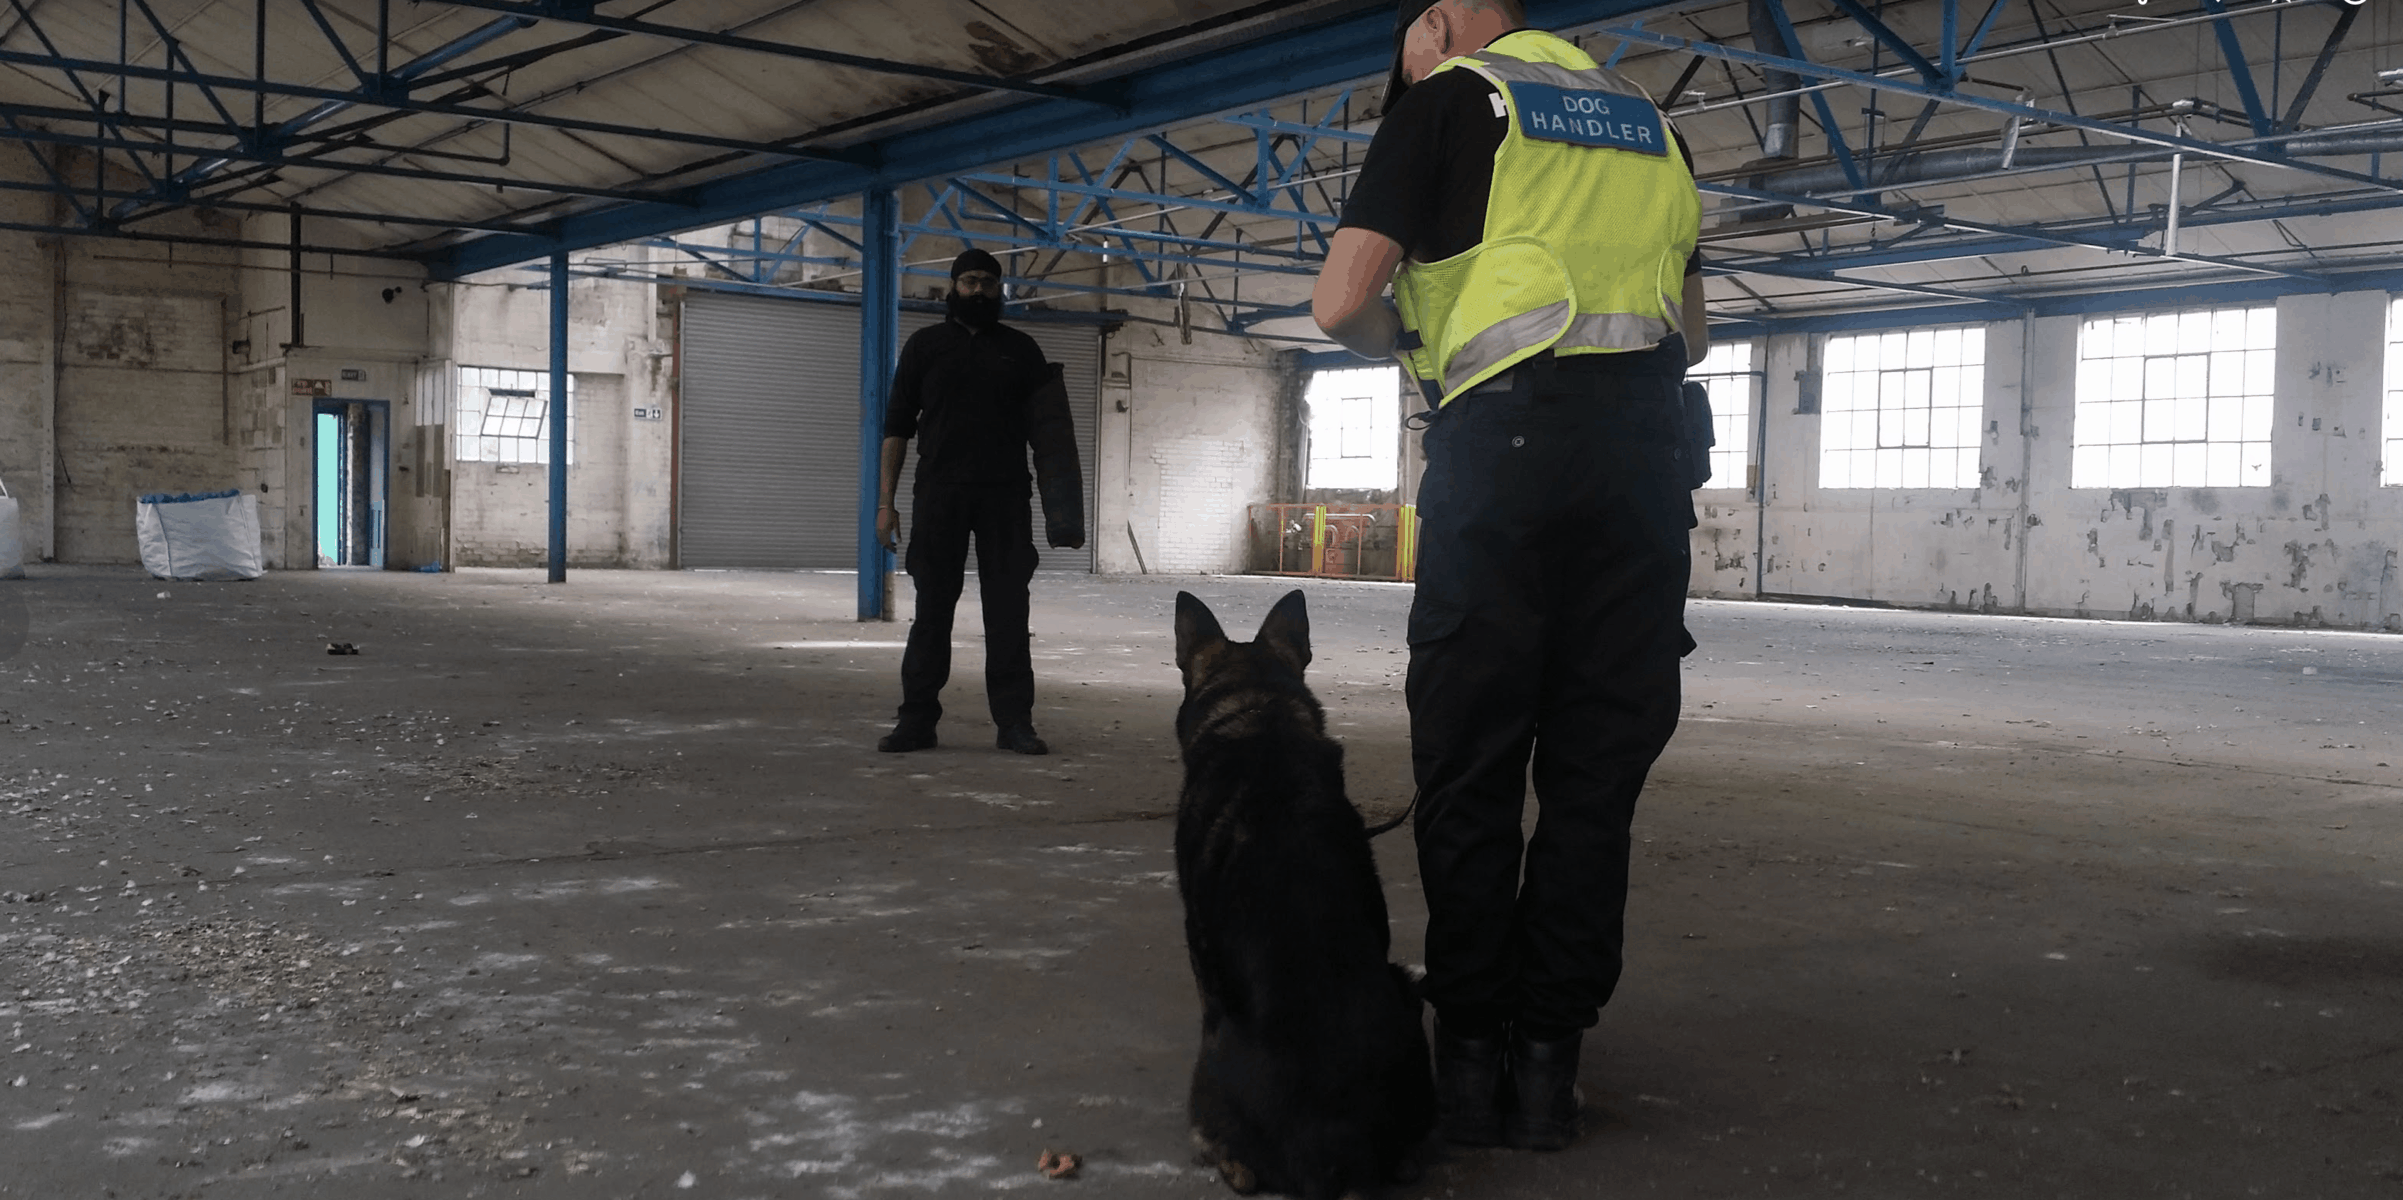 Security dogs liverpool